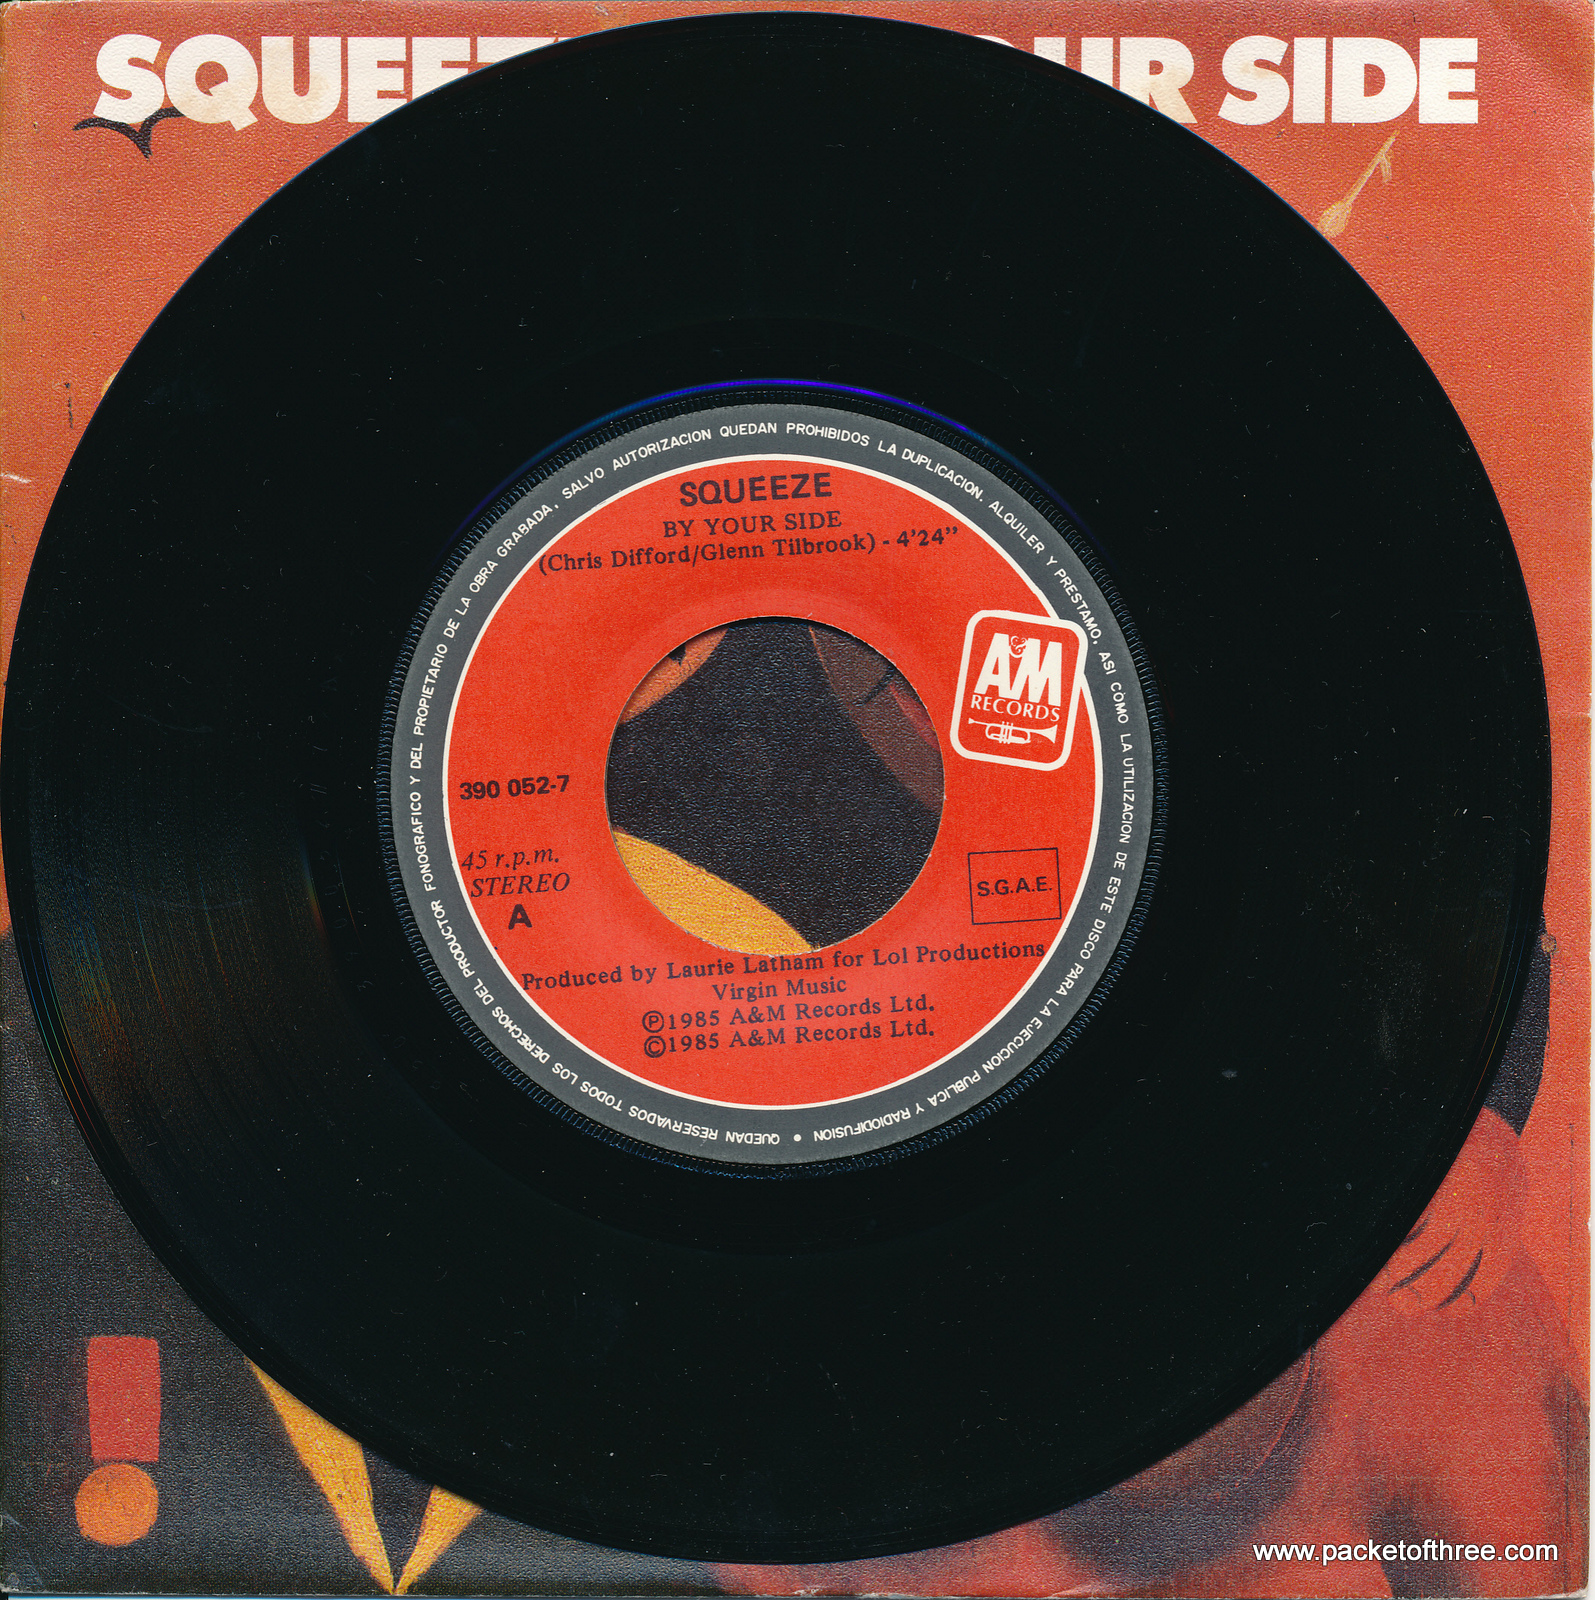 "Squeeze - By Your Side - Spain - 7"" - picture sleeve"